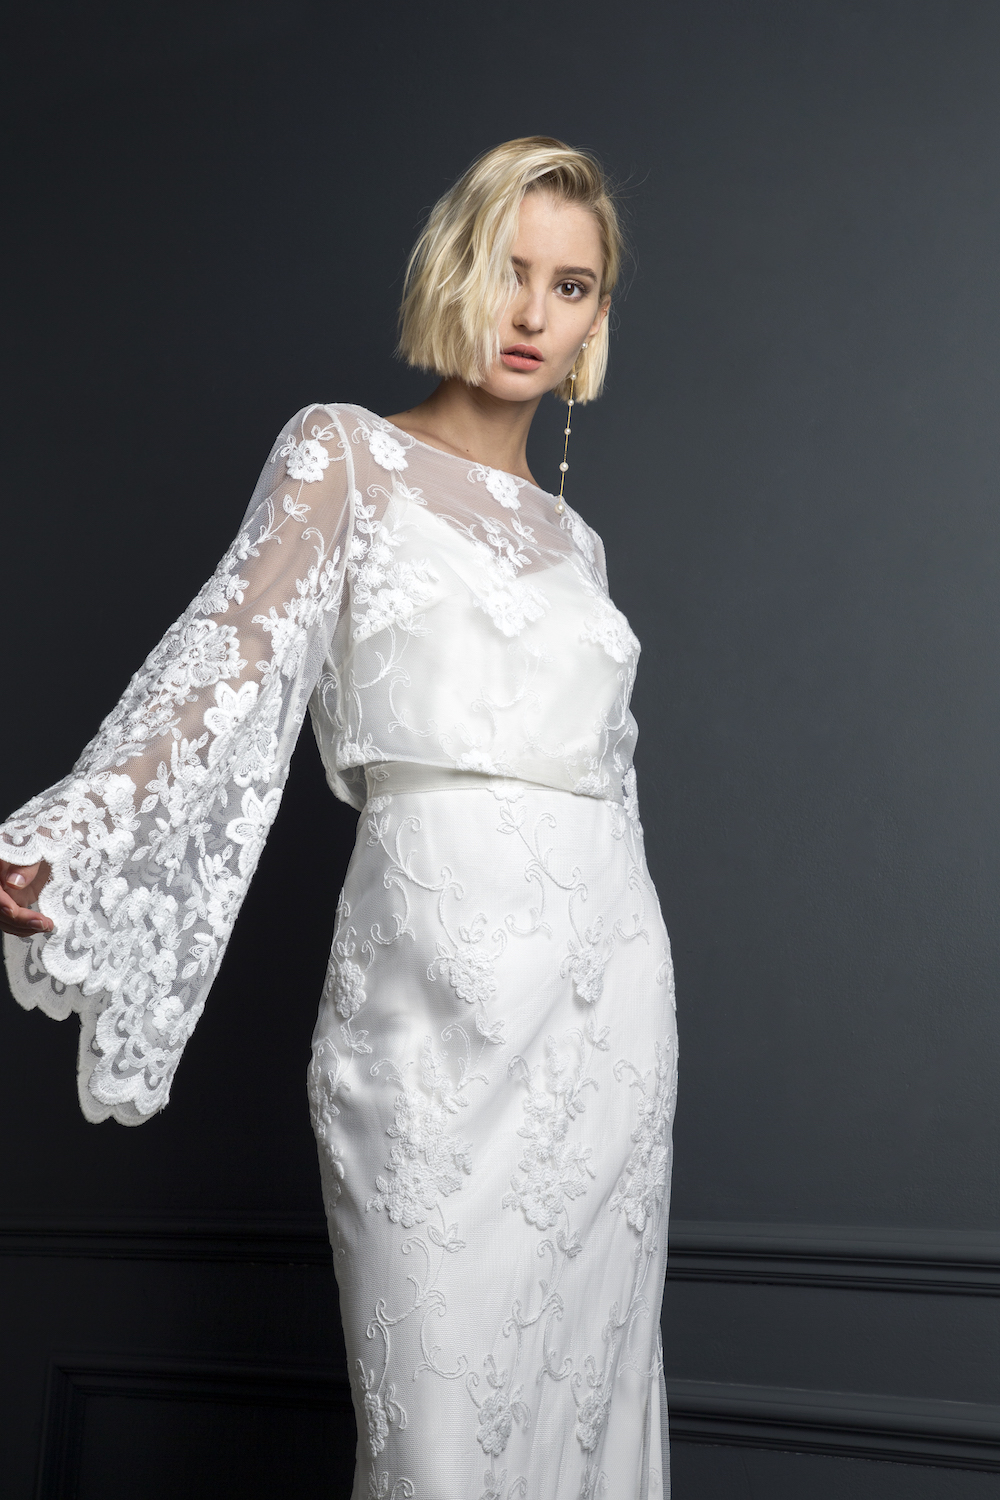 CHARLIE TOP & SKIRT | WEDDING DRESS BY HALFPENNY LONDON